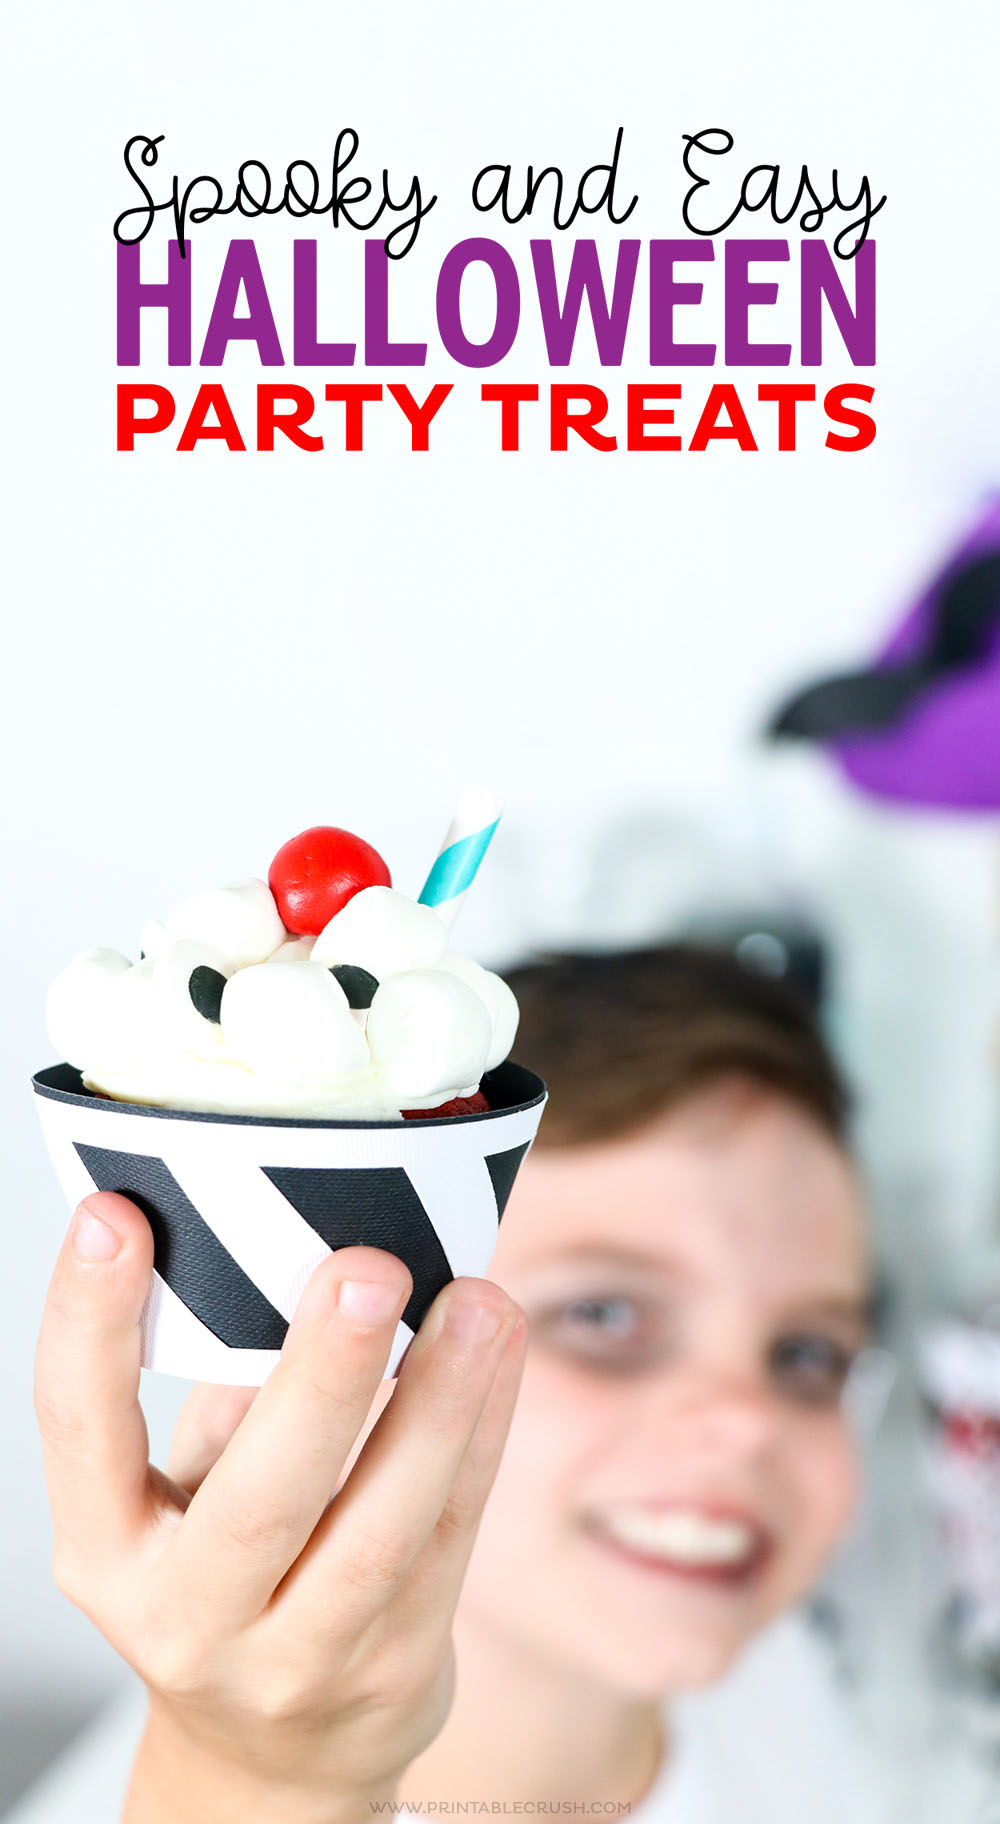 Check out Four Spooky and EASY Halloween Party Treats that your kids will LOVE!